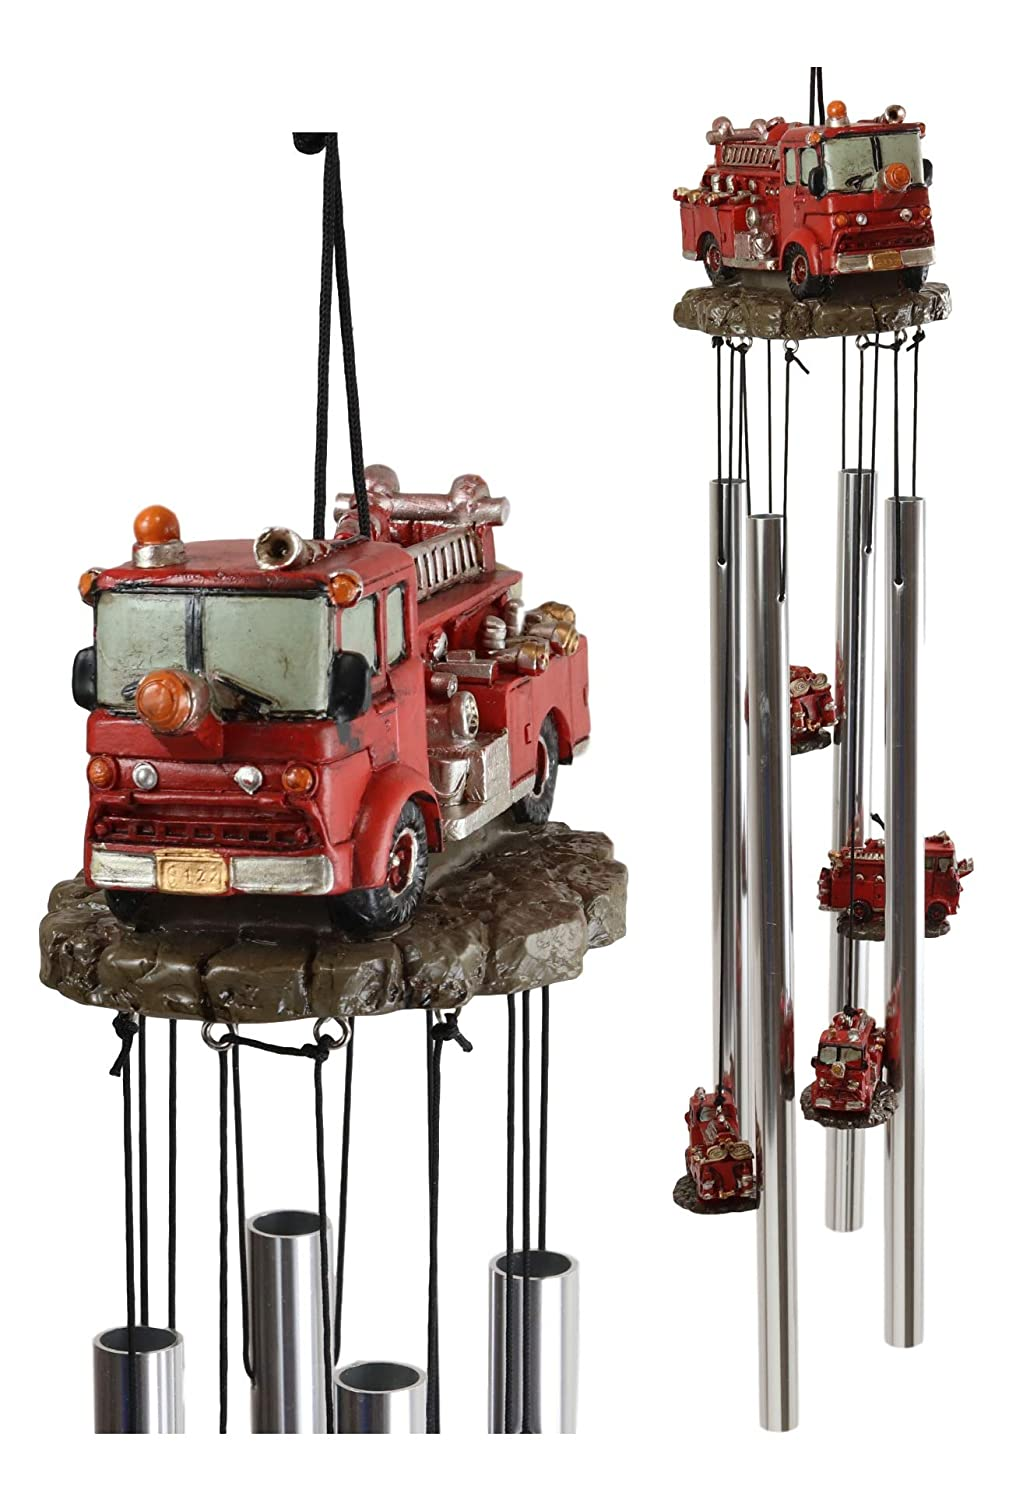 Ebros Gift Decorative Red Fire Engine Truck Model Resonant Relaxing Wind Chime Patio Garden Accent of Fire Fighters Hydrants 911 Emergency Civil Service